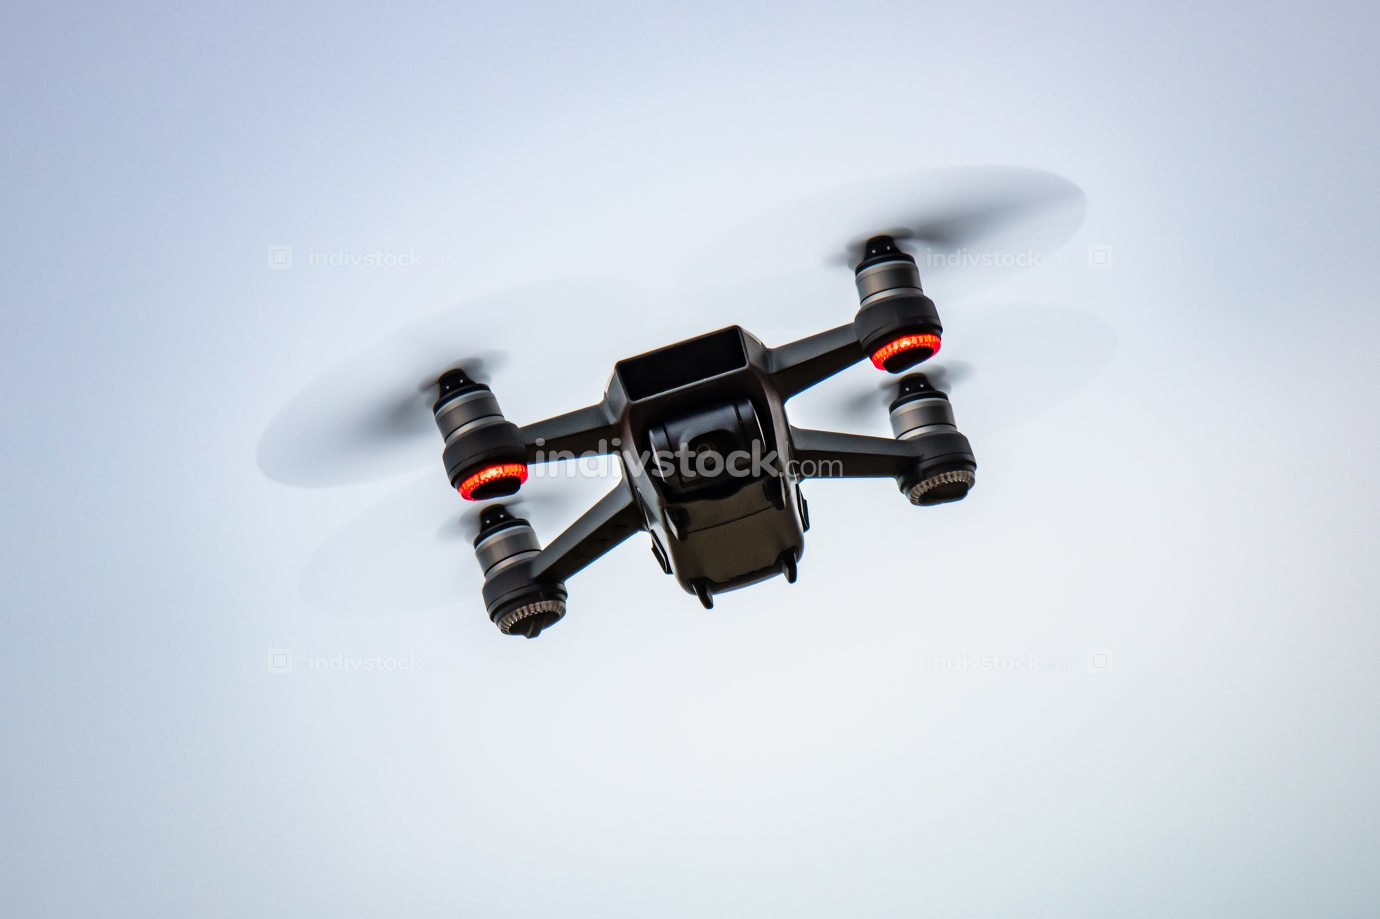 toy drone sky background